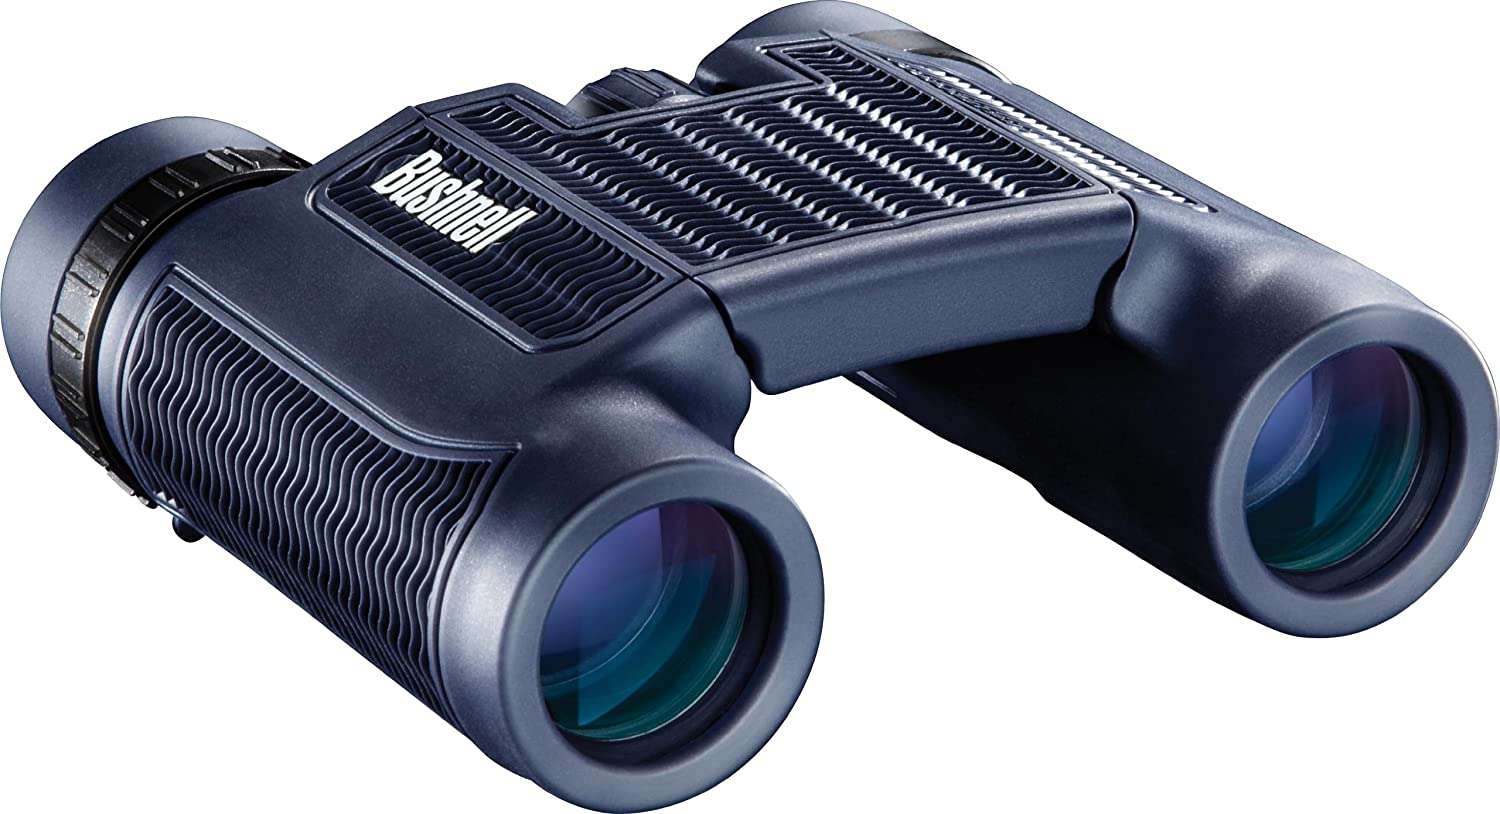 Amazon.com : Bushnell H2O Waterproof Compact Roof Prism Binocular, 10 x  25-mm : Camera & Photo